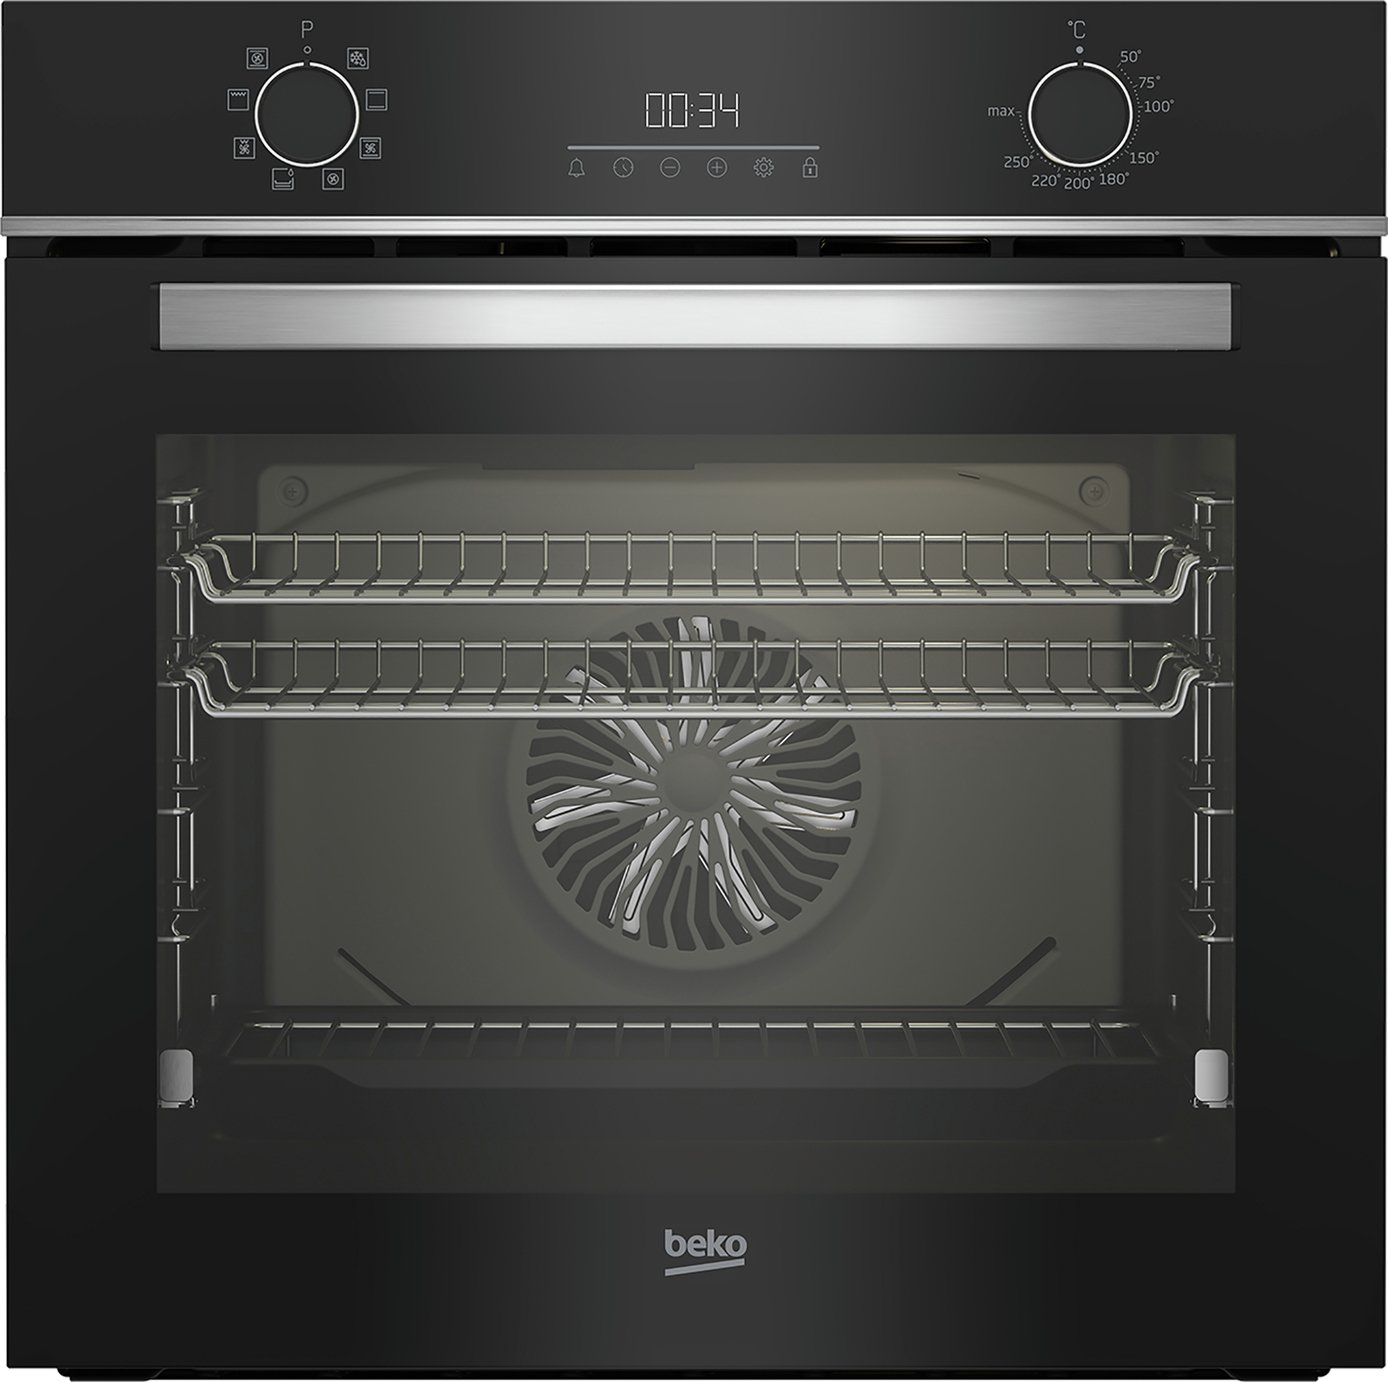 Beko 72L AeroPerfect Electric Single Oven with Catalytic Cleaning - Black